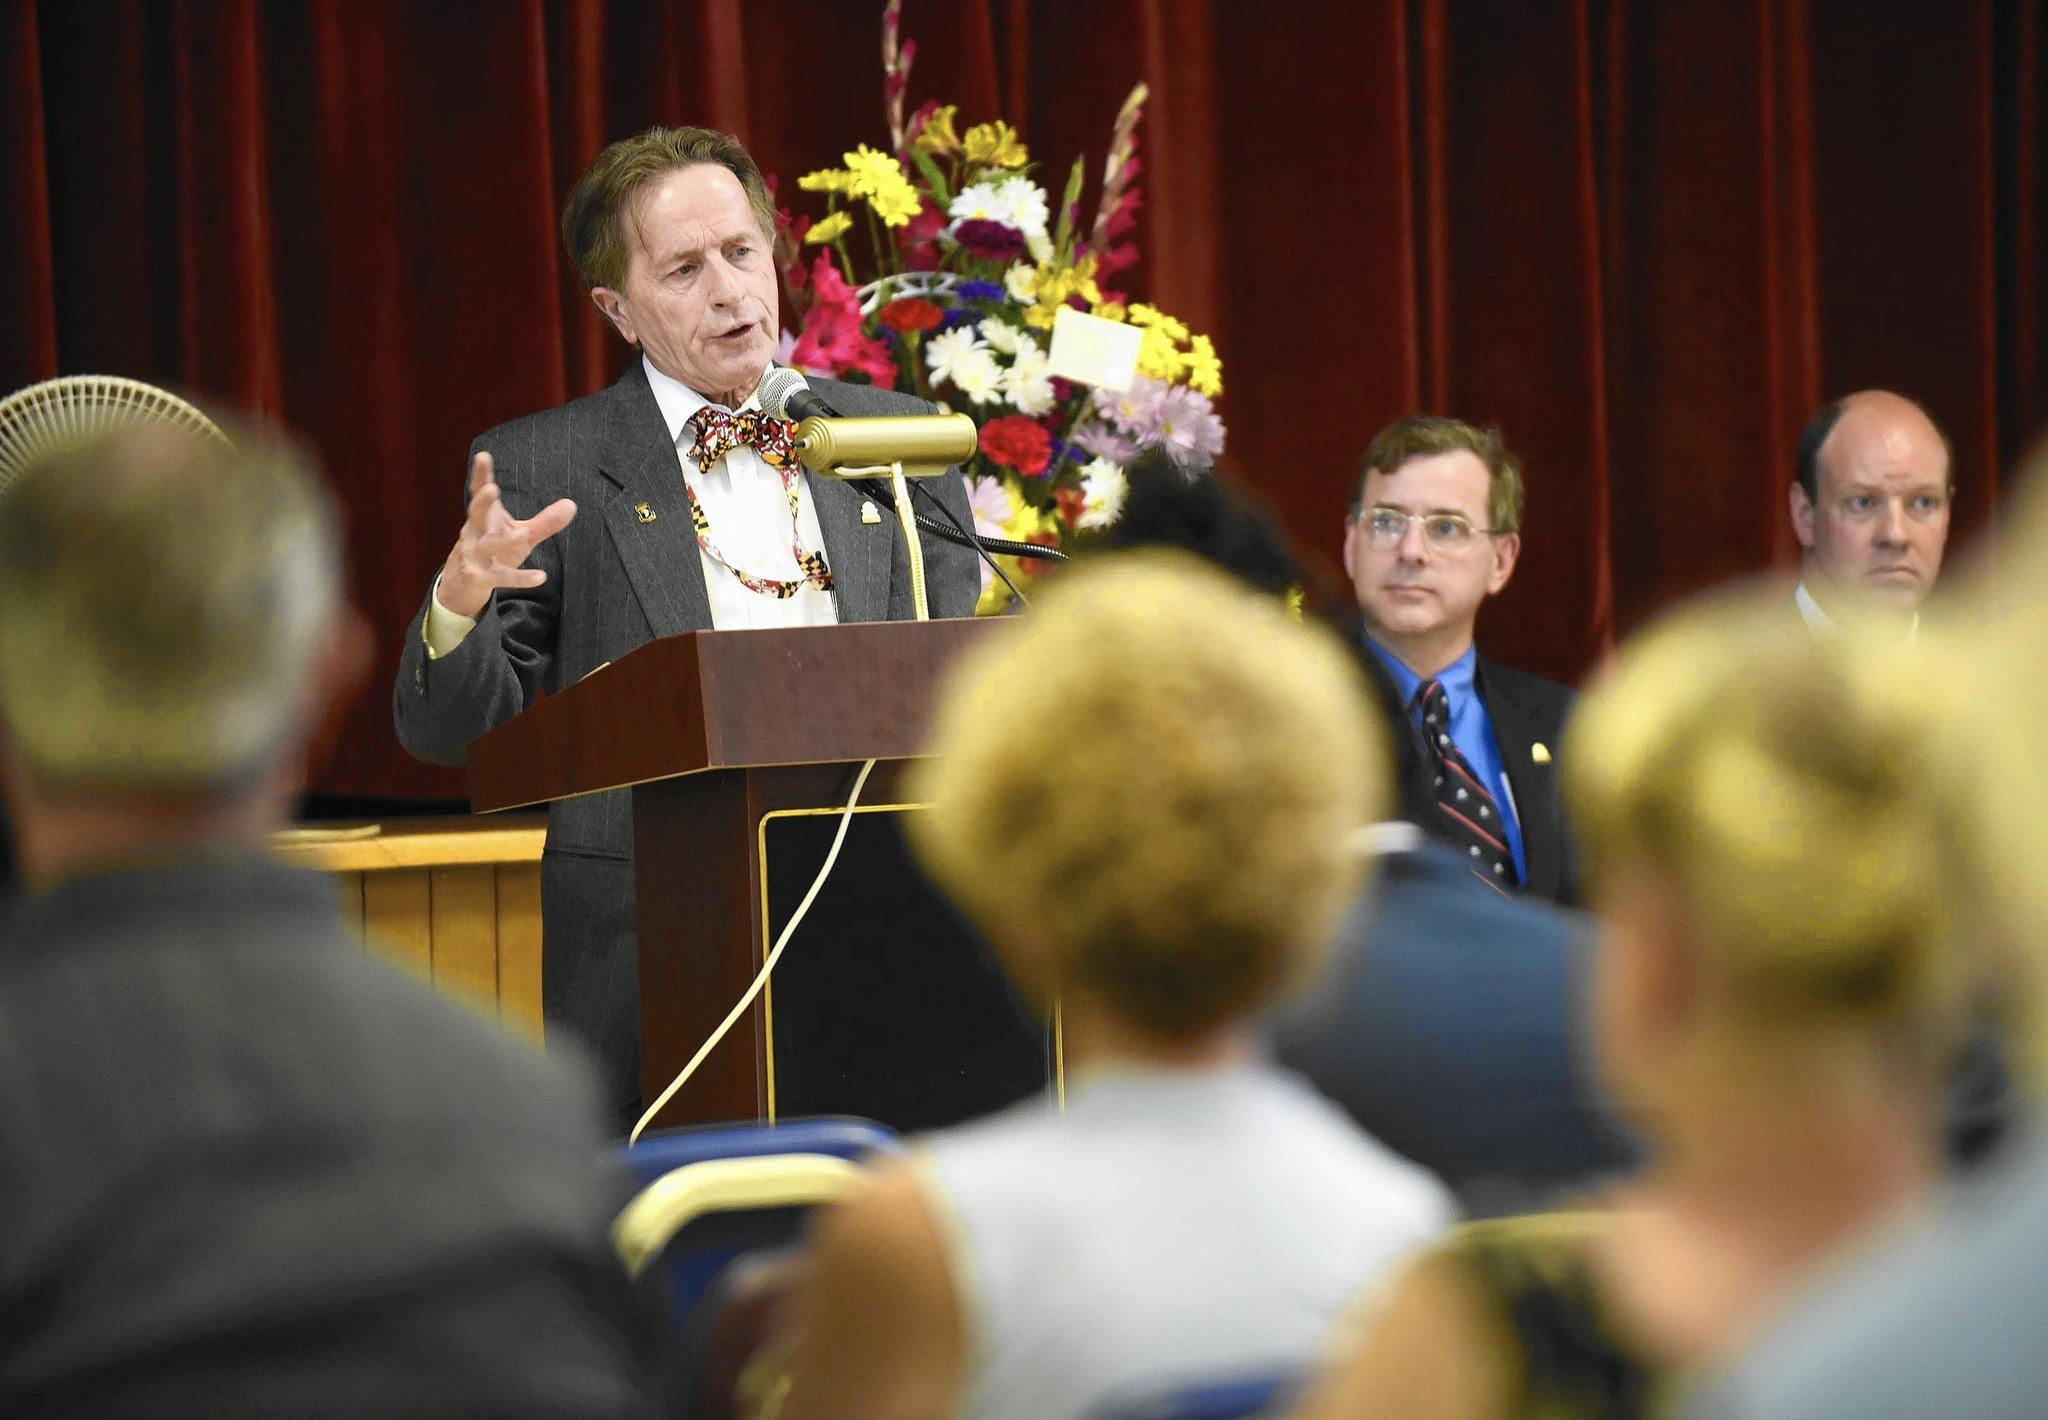 Anatomy Board of Maryland donor ceremony - Carroll County Times